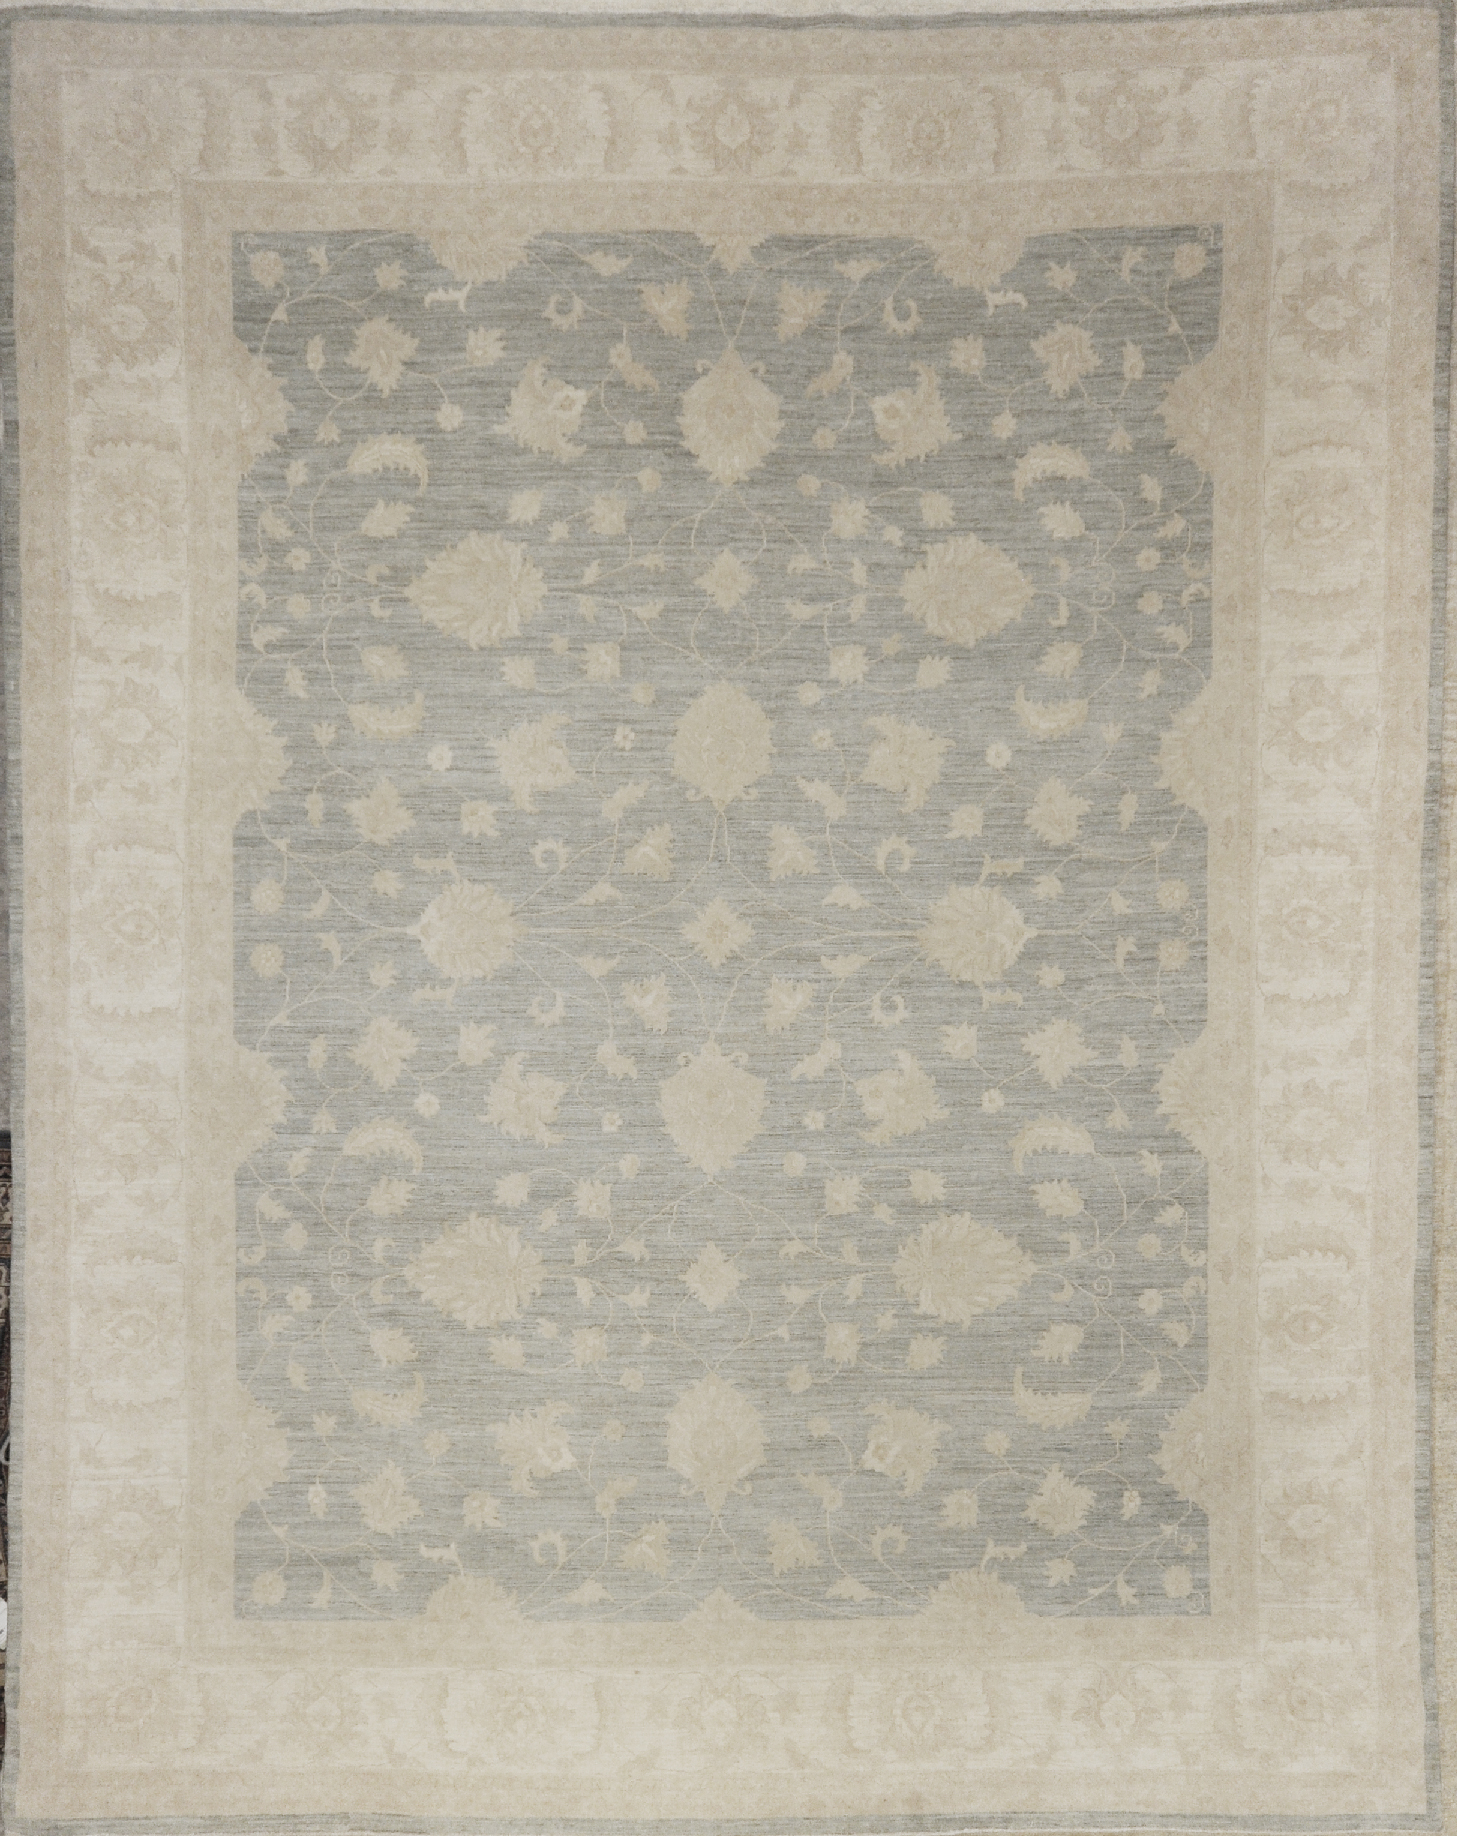 Fine Ziegler Oushak Rug with soft blue grey santa barbara wool rug carpet all over design hand knotted natural organic dyes